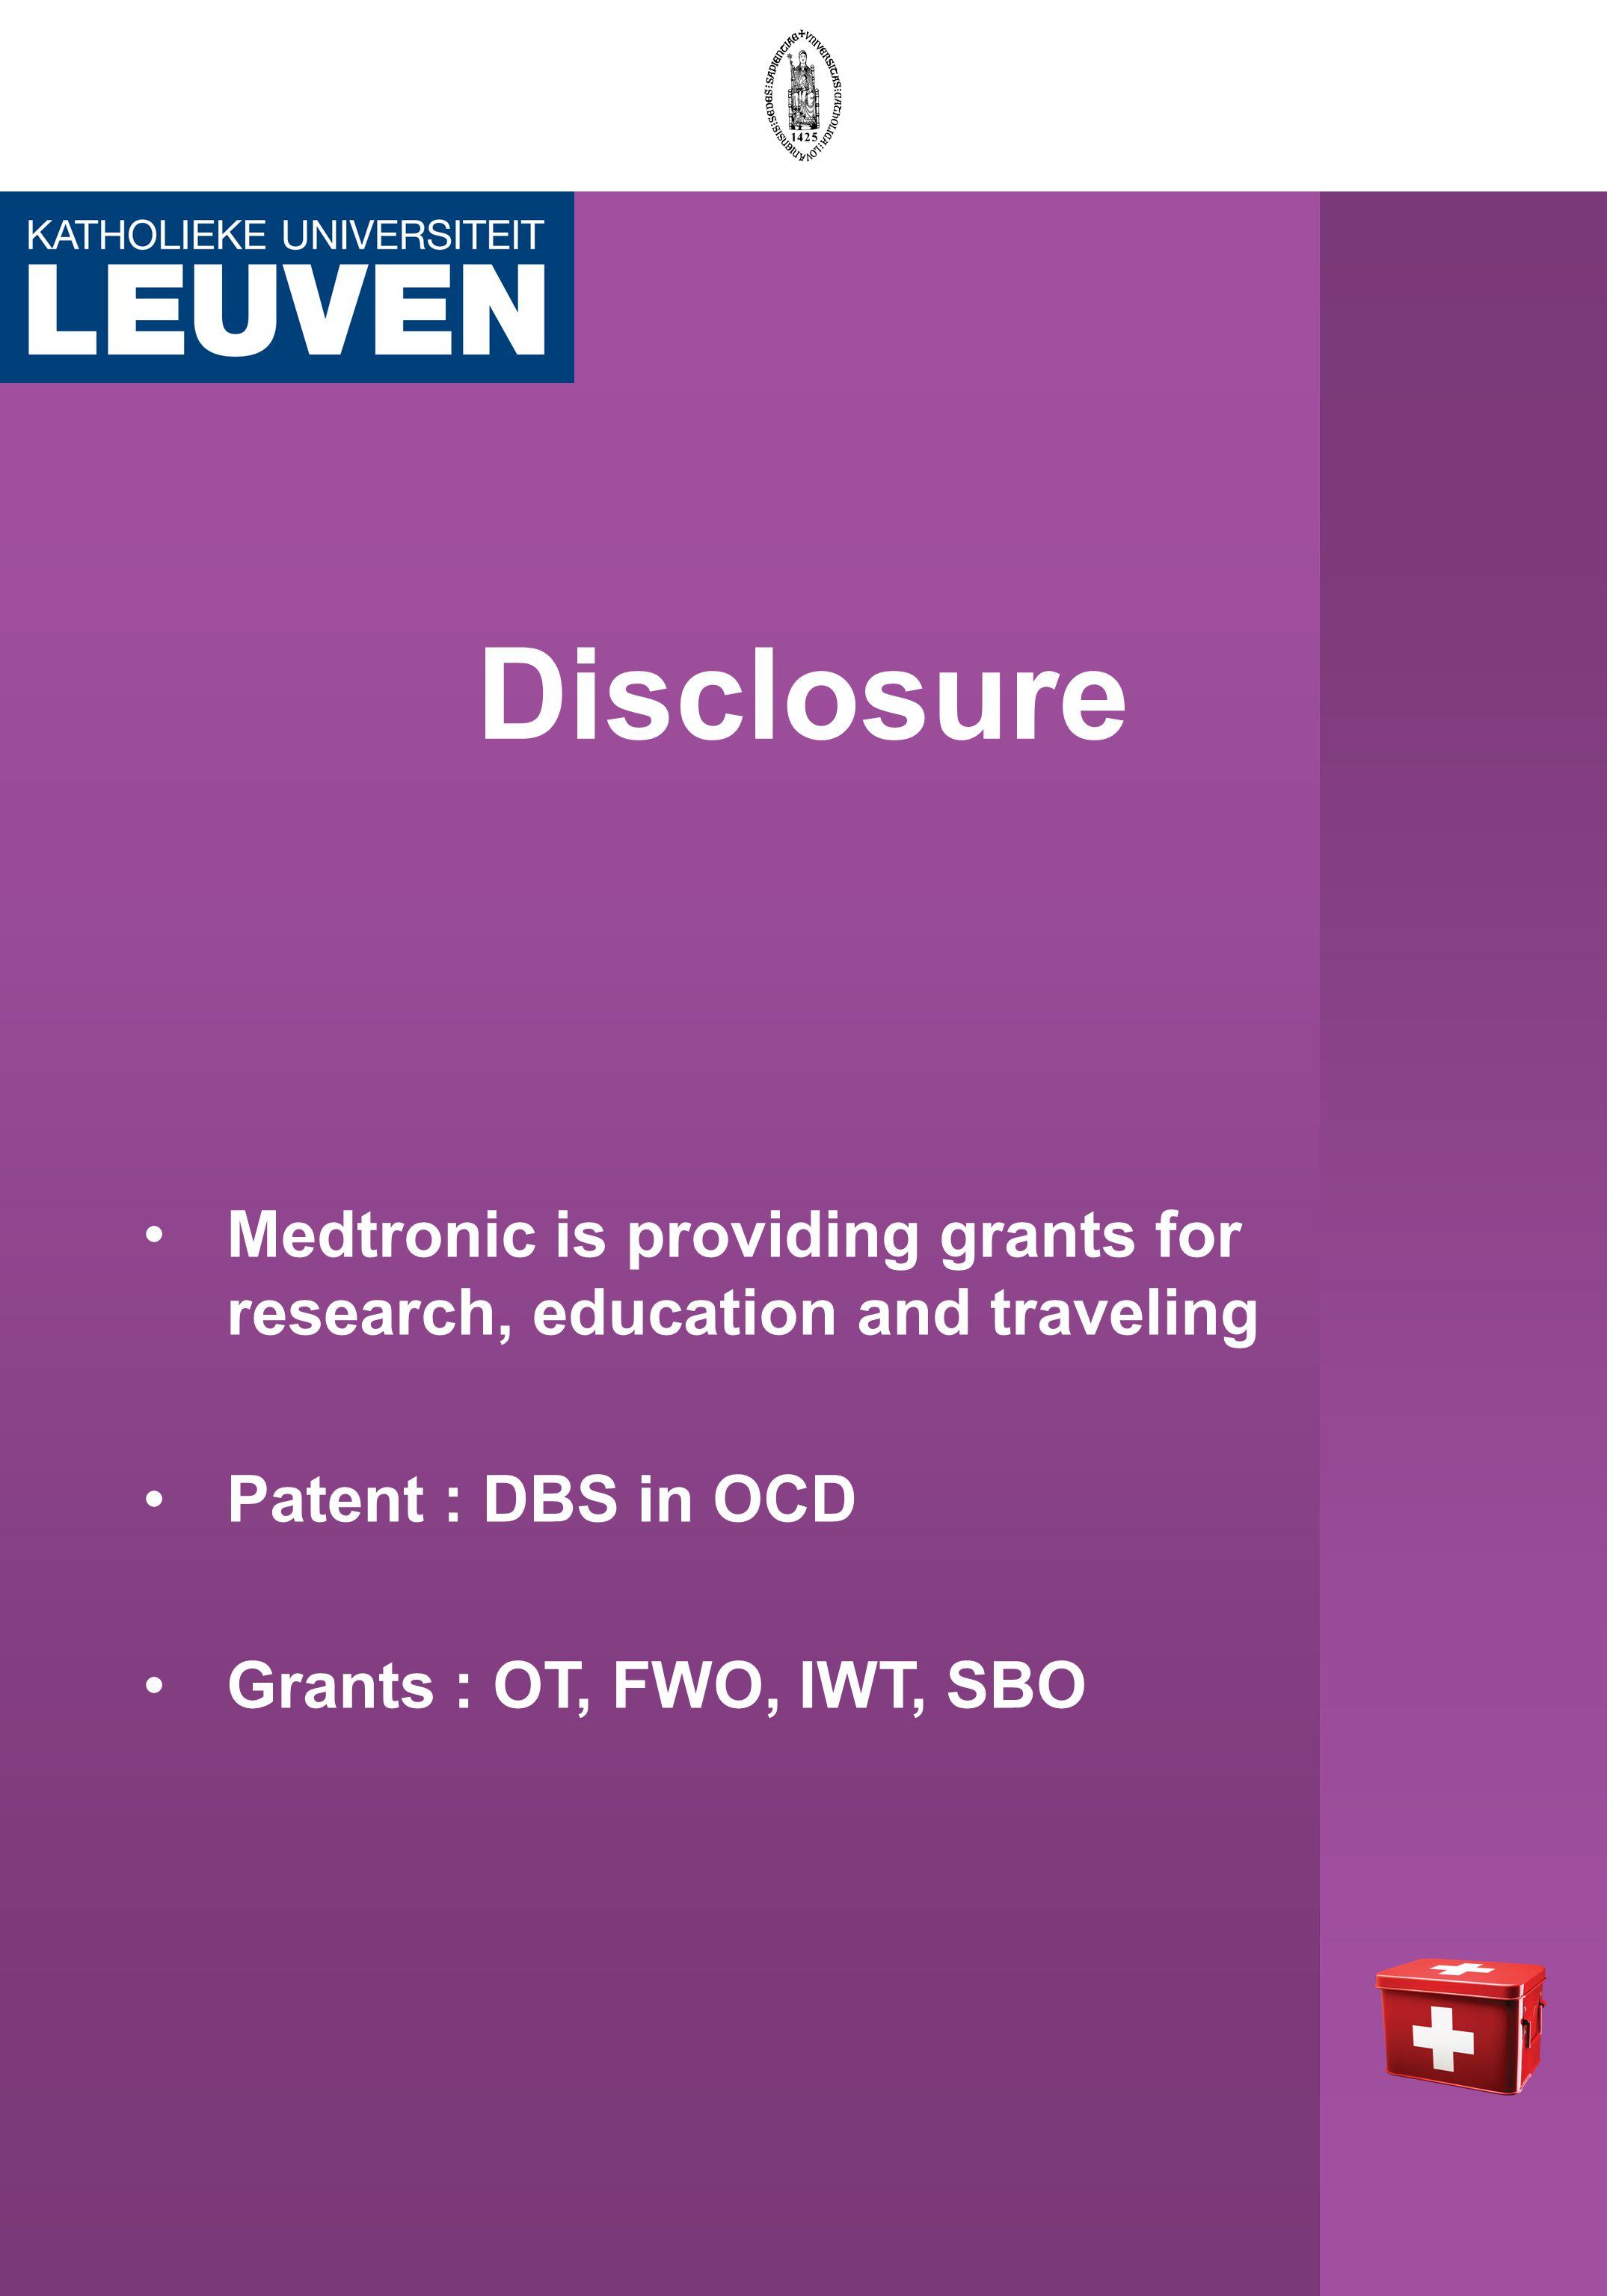 Disclosure Medtronic is providing grants for research, education and traveling Patent : DBS in OCD Grants : OT, FWO, IWT, SBO